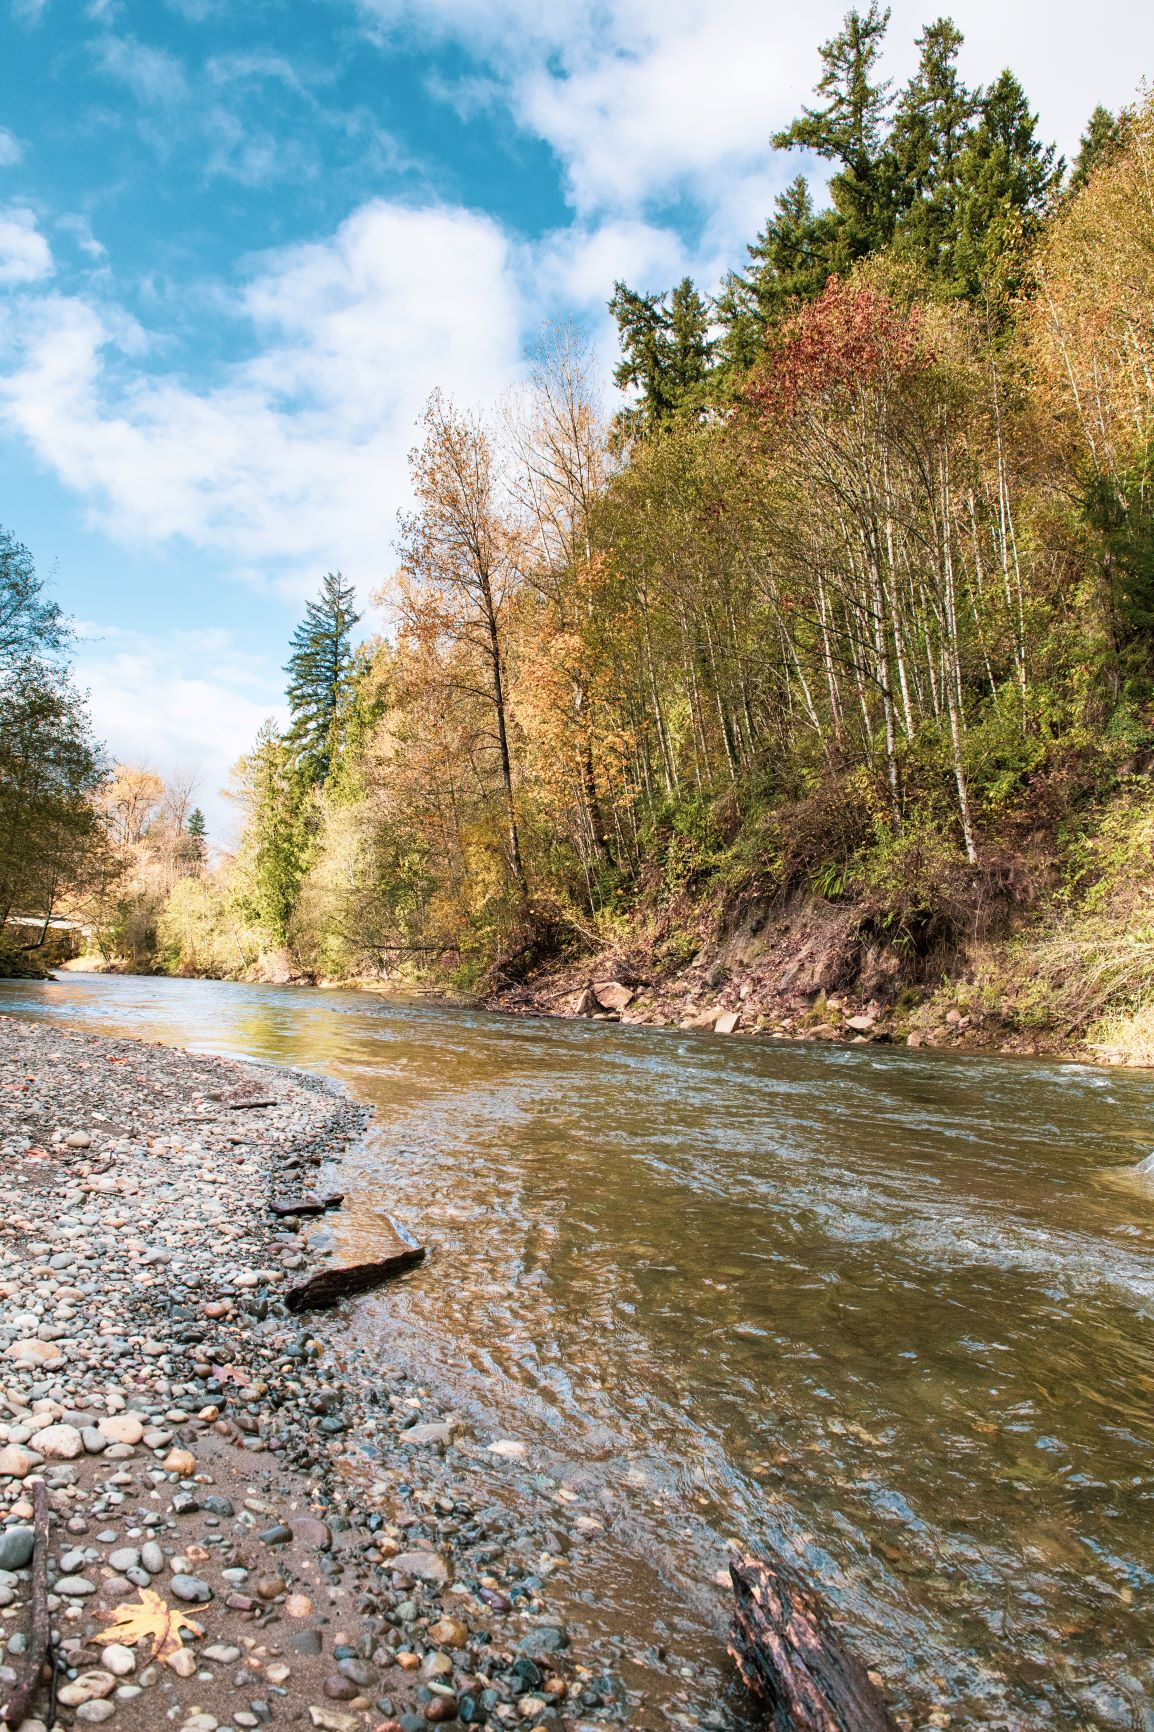 Image of a river. Rocky riverbed on the left. River flowing through the middle. Trees and hilled river bank on the right. Blue sky and clouds in the background.